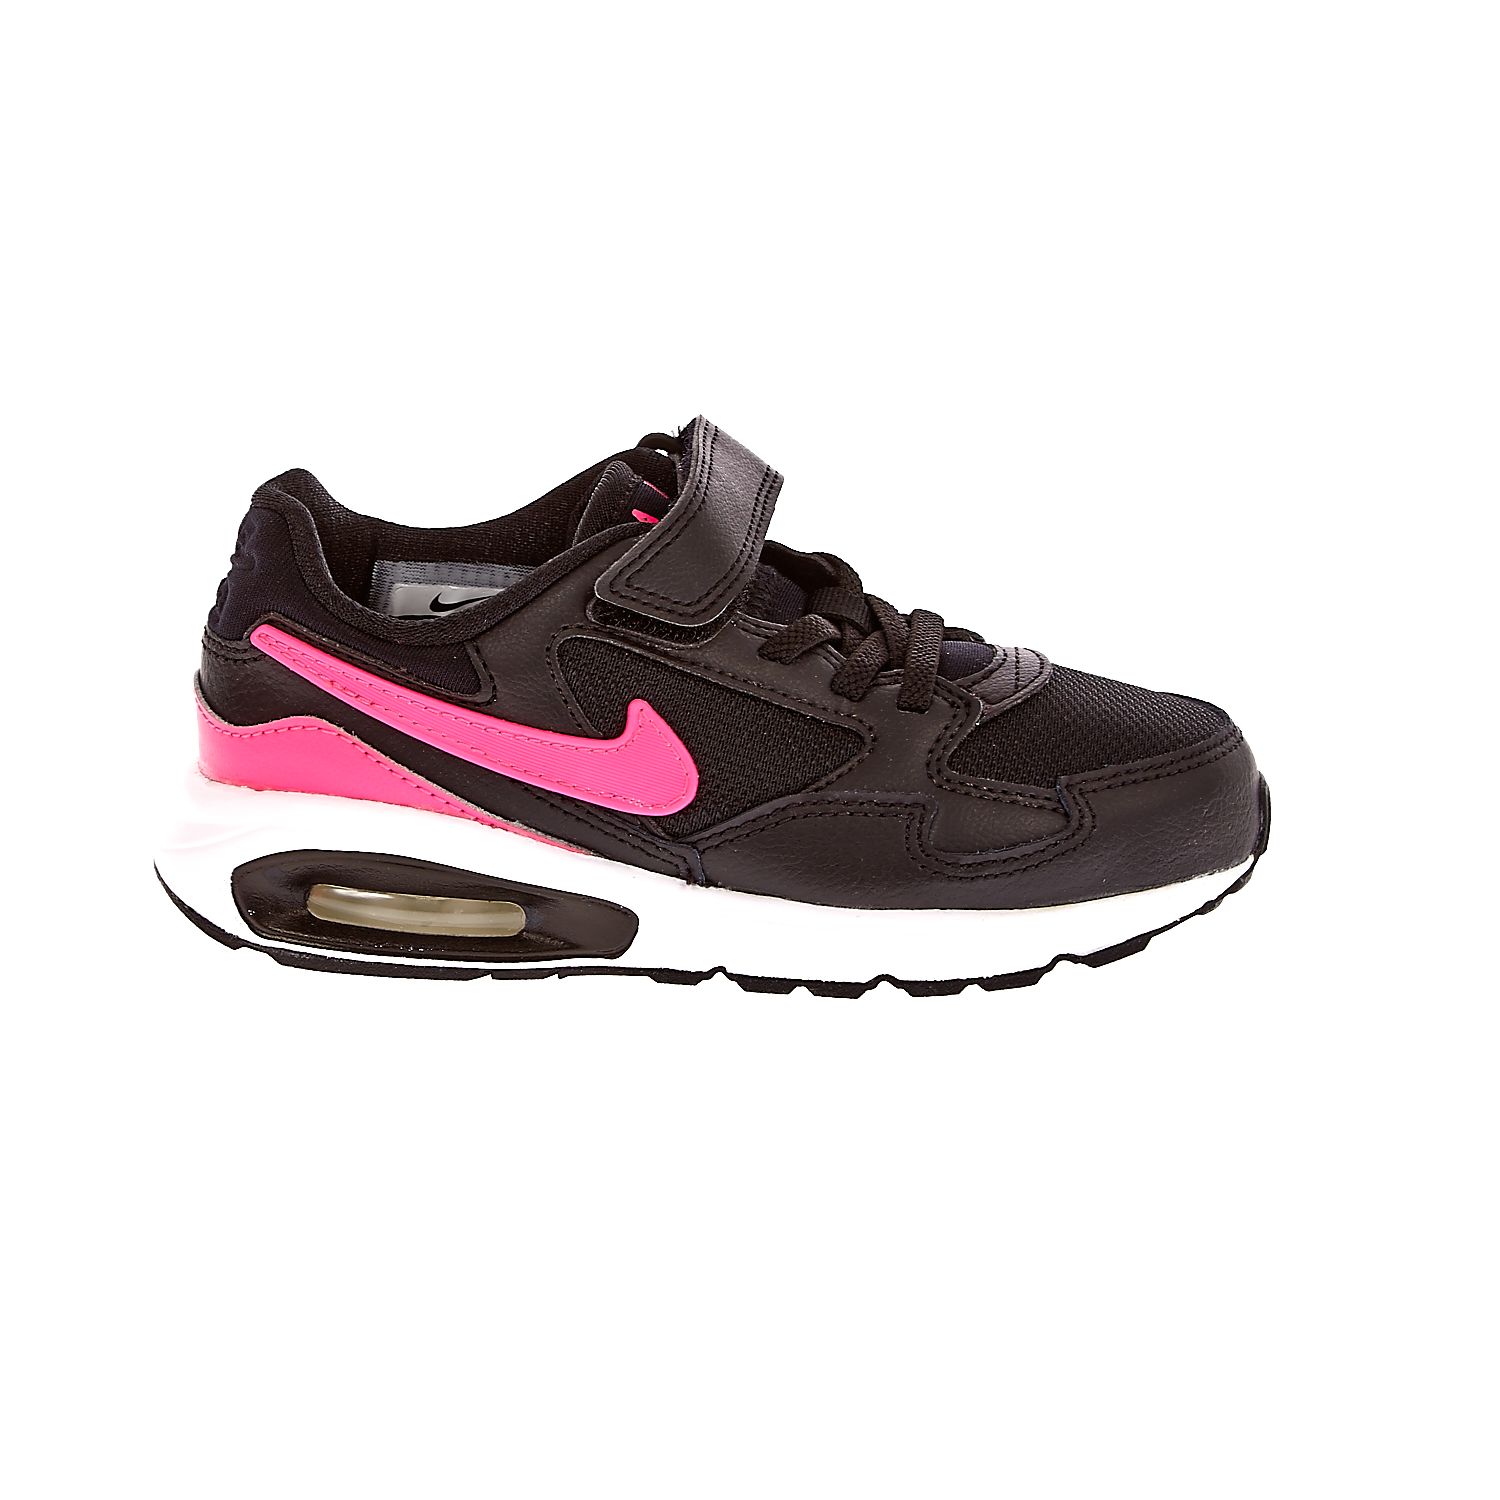 NIKE – Παιδικά αθλητικά παπούτσια NIKE AIR MAX ST μαύρα